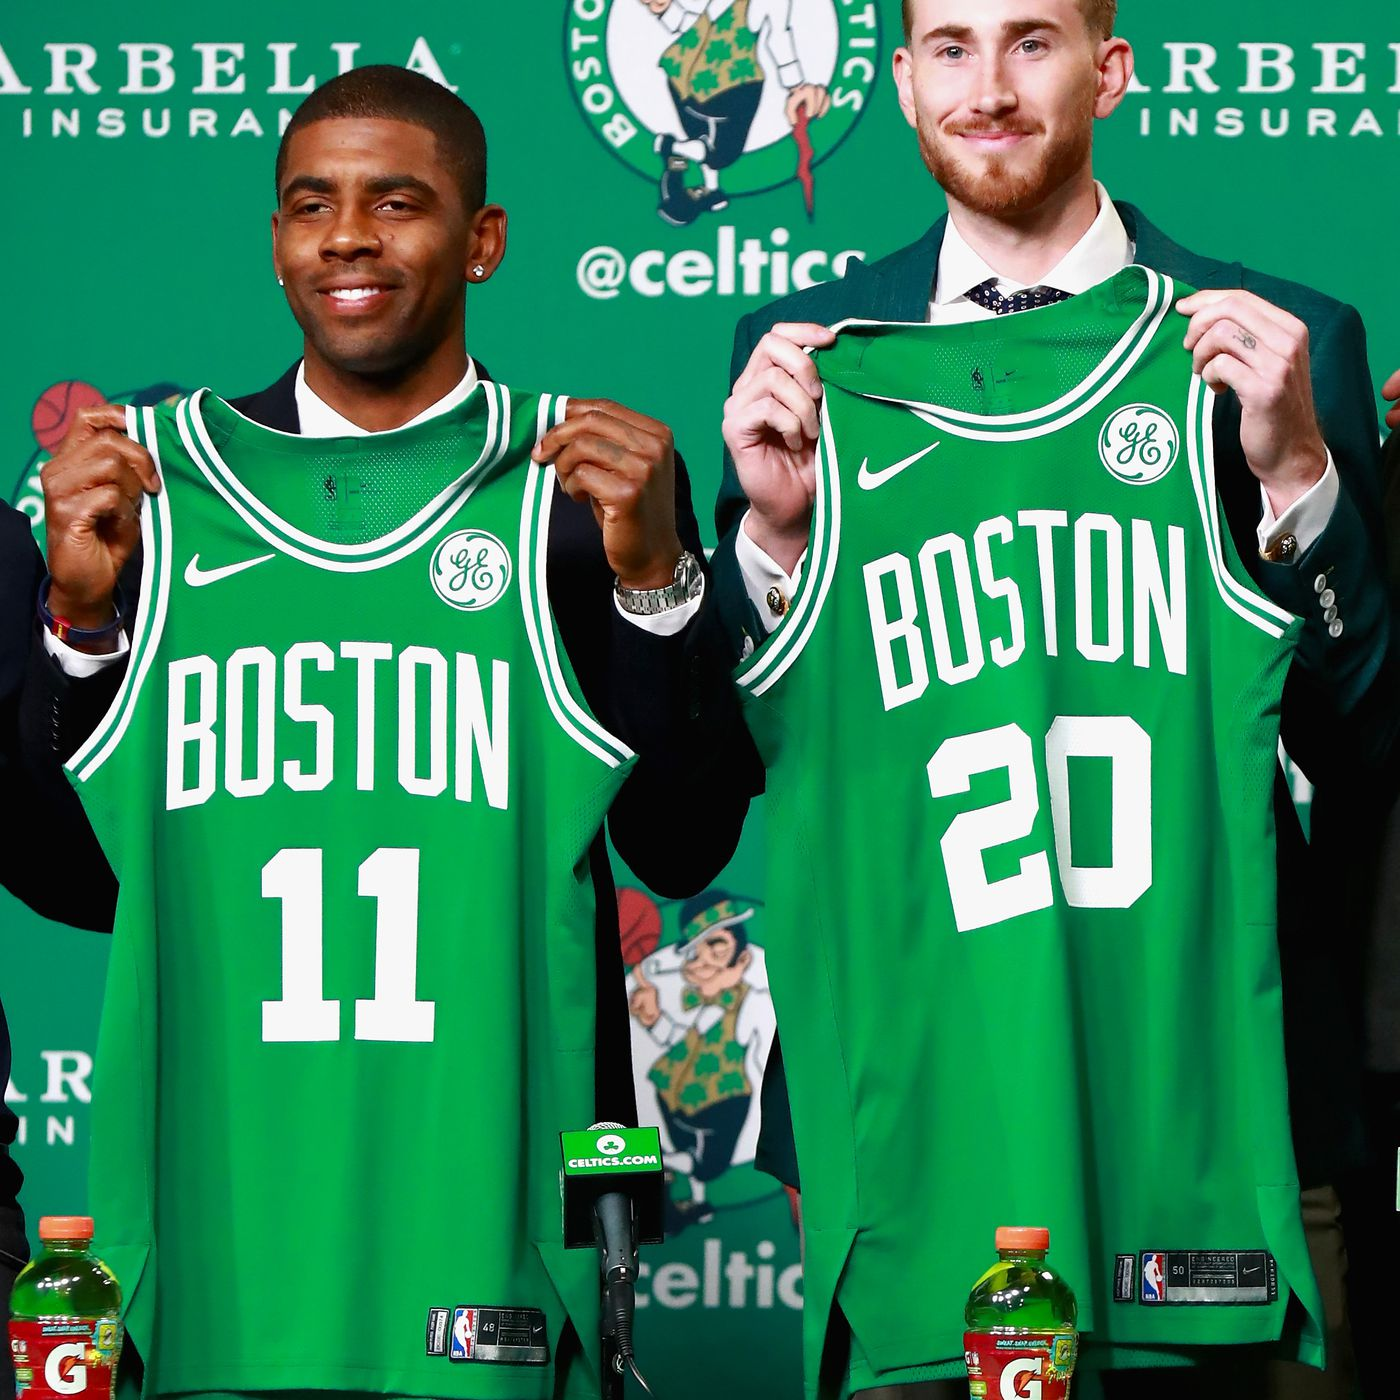 52dc9e098 NBA2K18 leaks Celtics  City Edition uniform - CelticsBlog